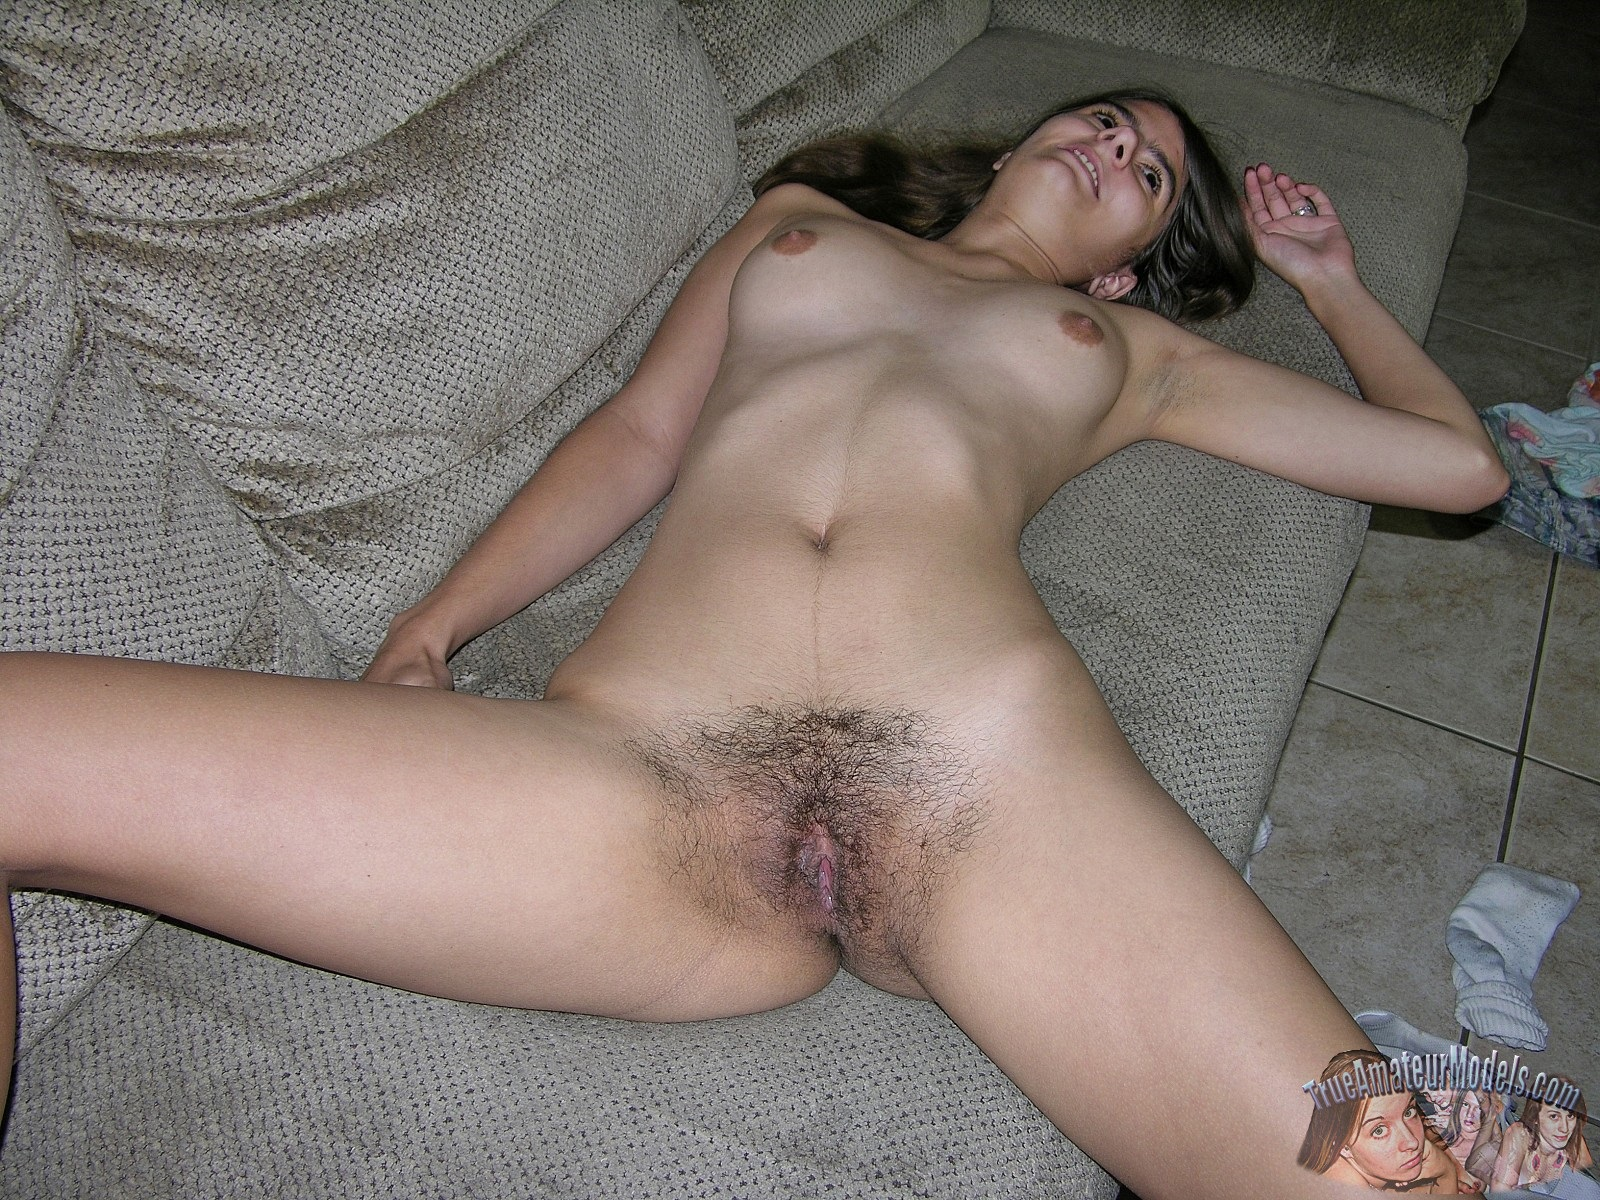 native american hairy girls xxx videos